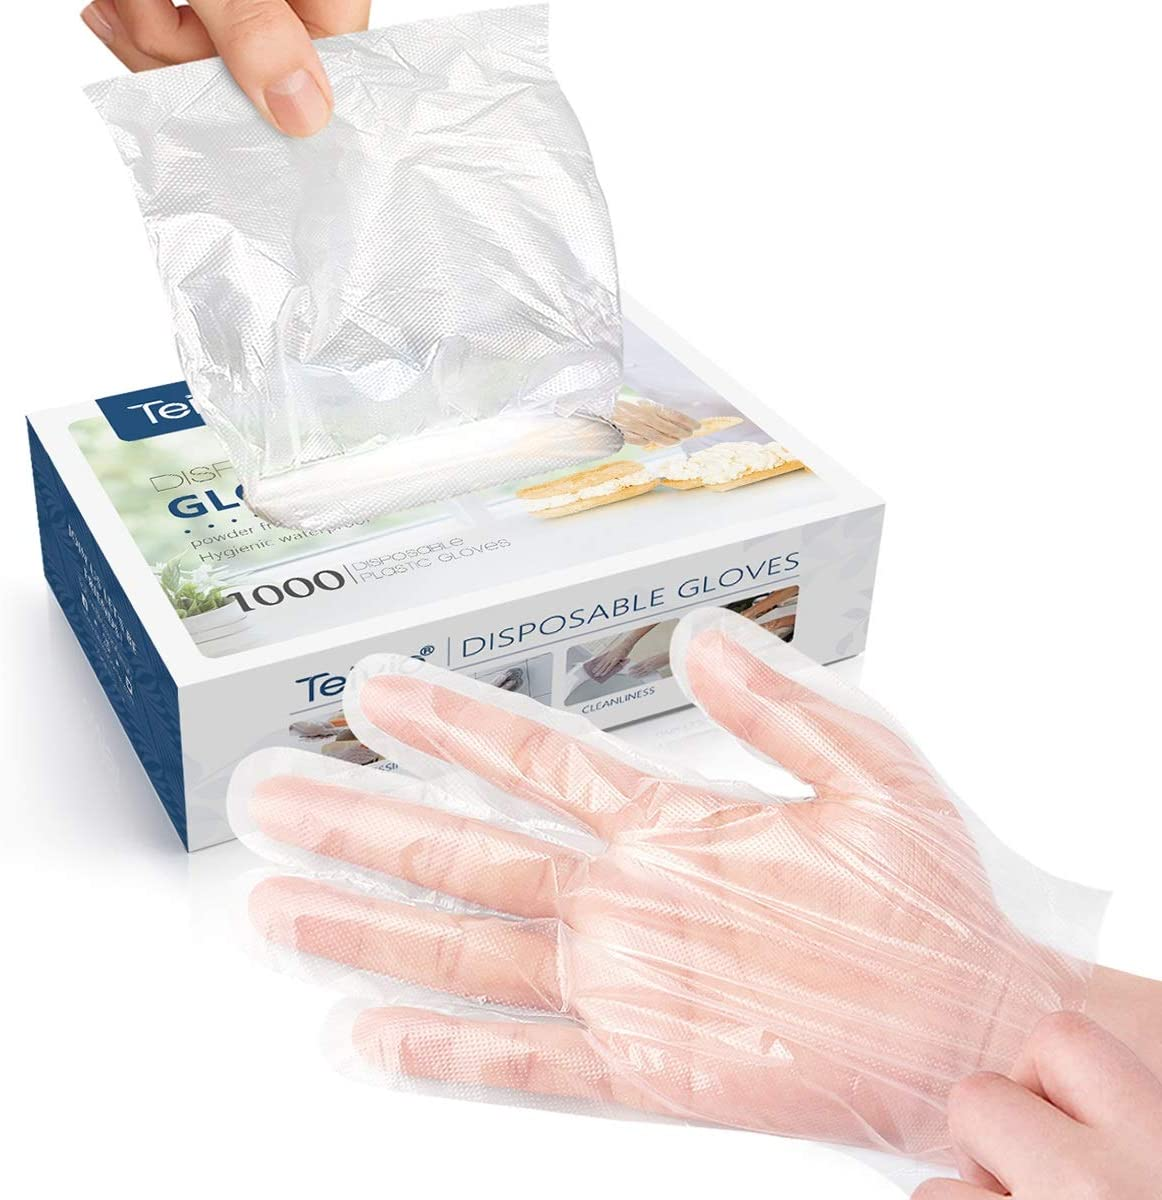 Disposable Gloves 1000 Pcs Plastic Gloves For Kitchen Cooking Cleaning Safety Food Handling Powder And Latex Free By Teivio